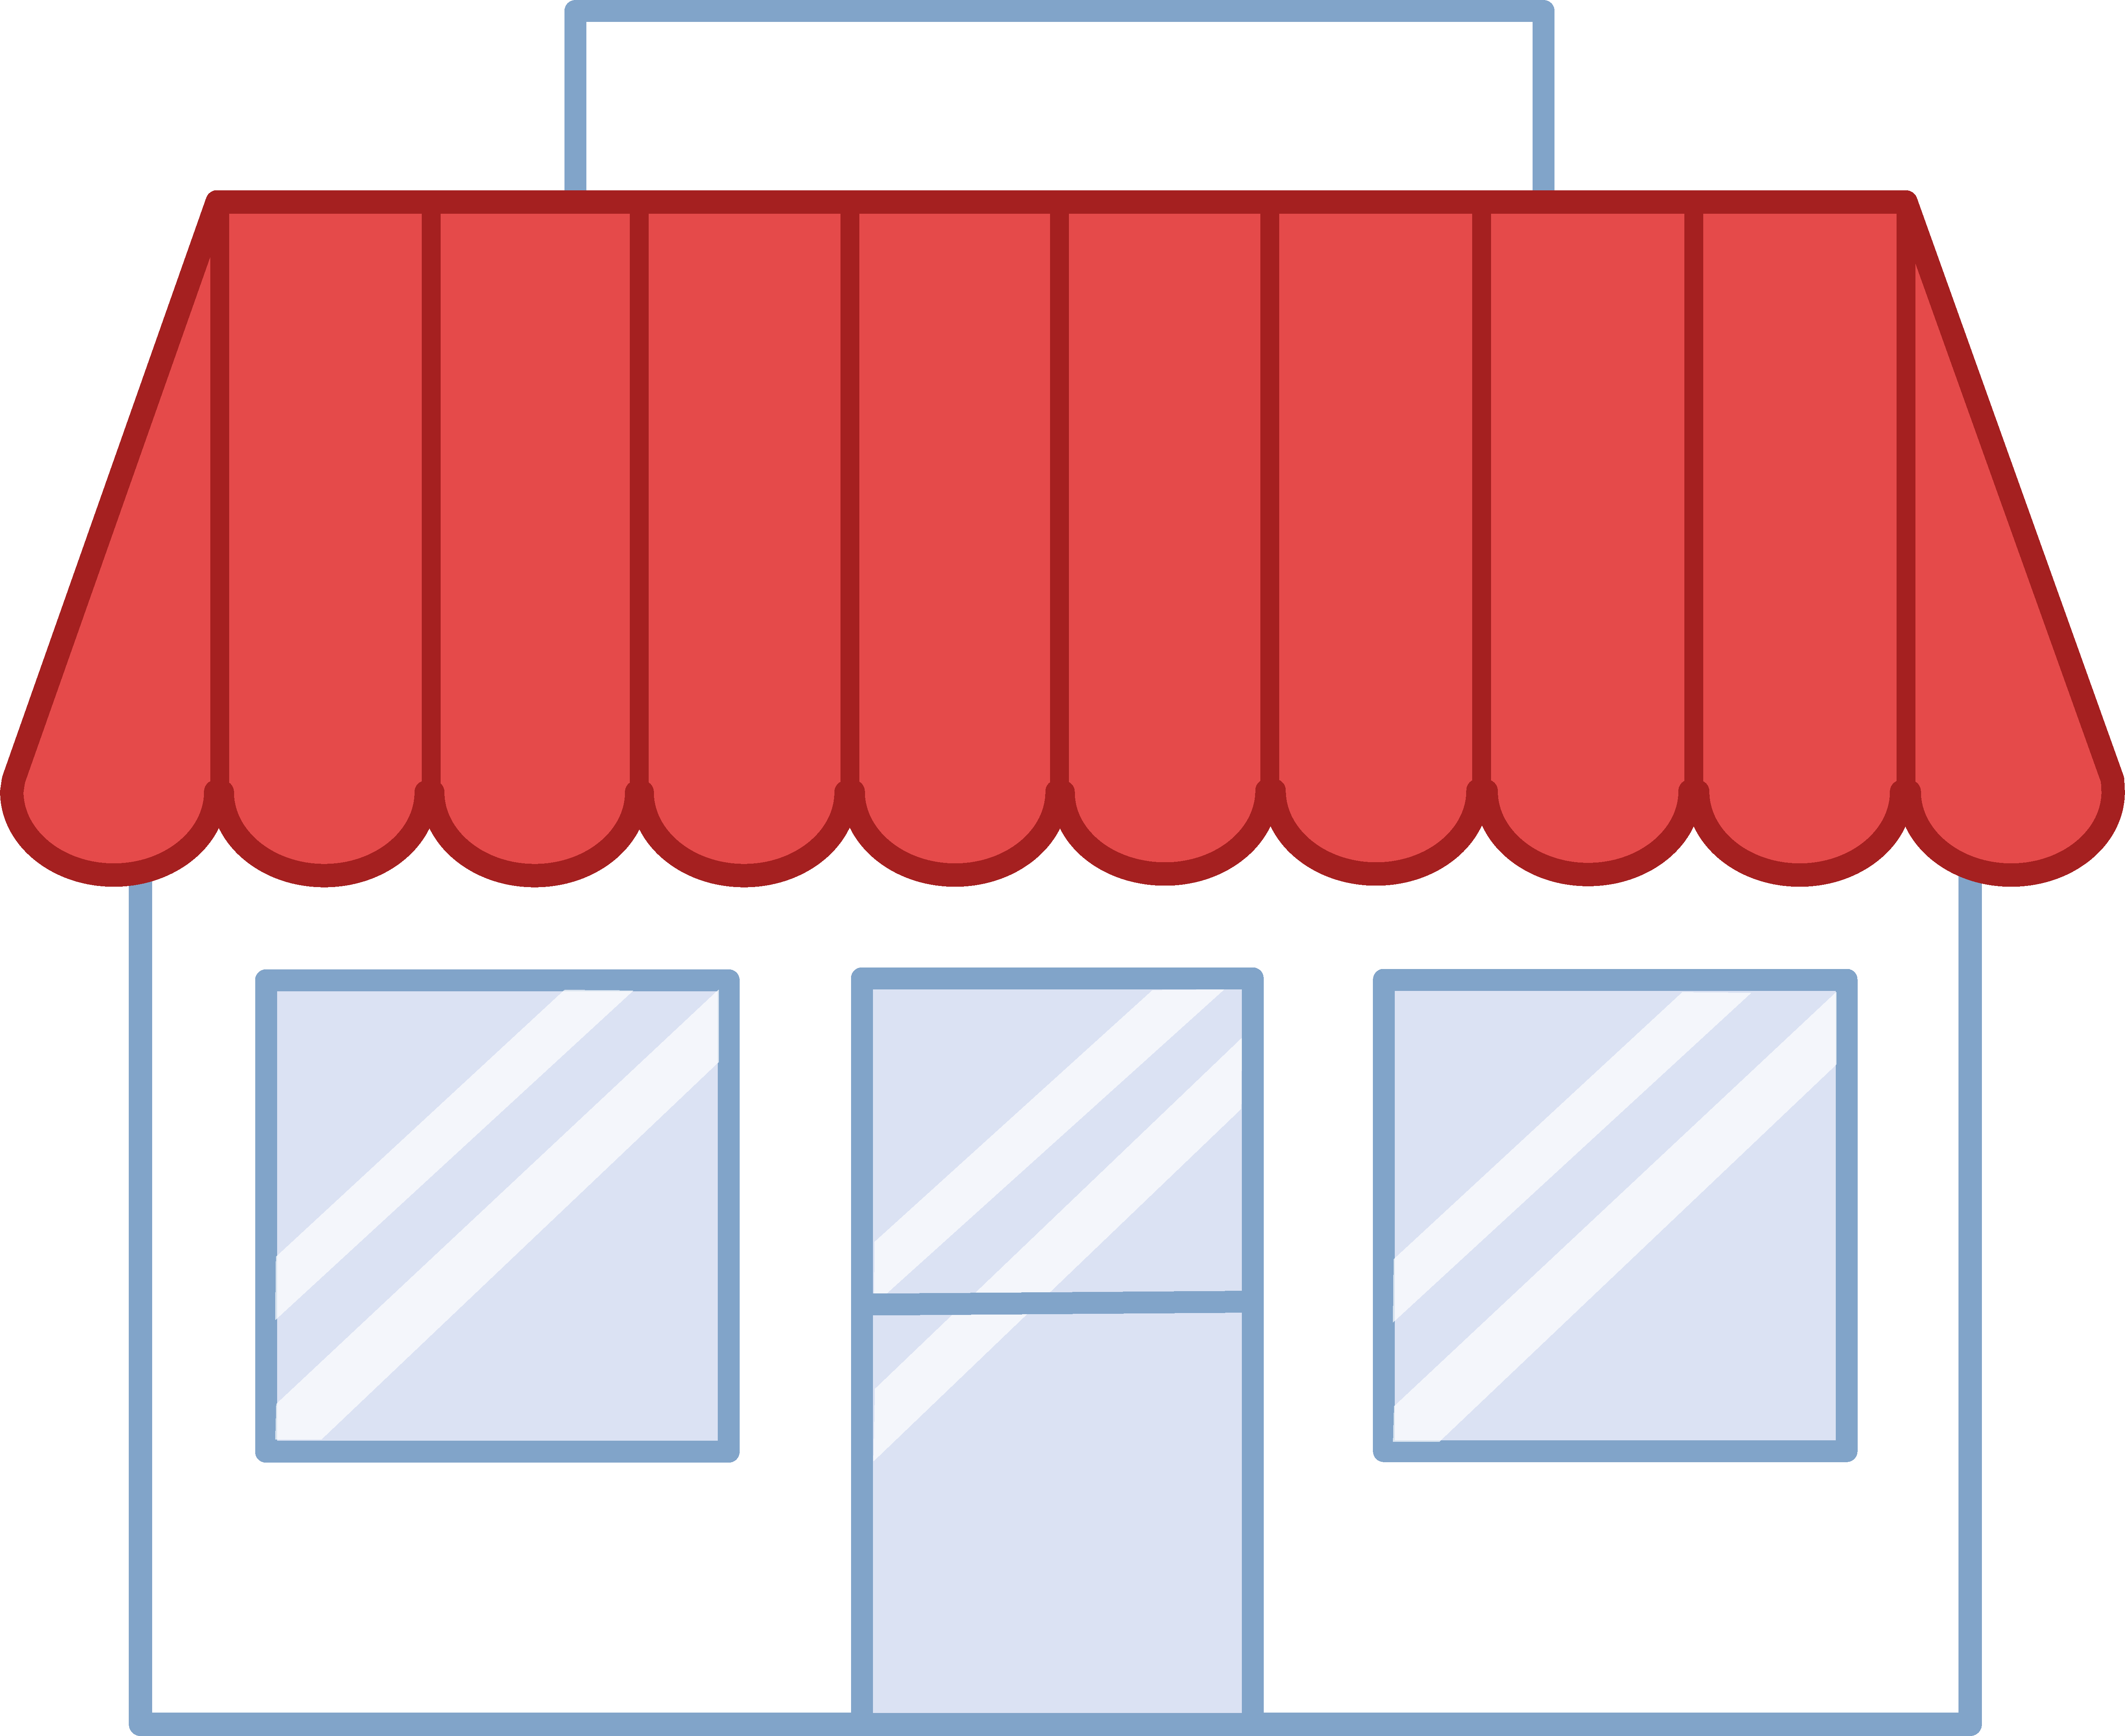 Store Building Free Clipart.